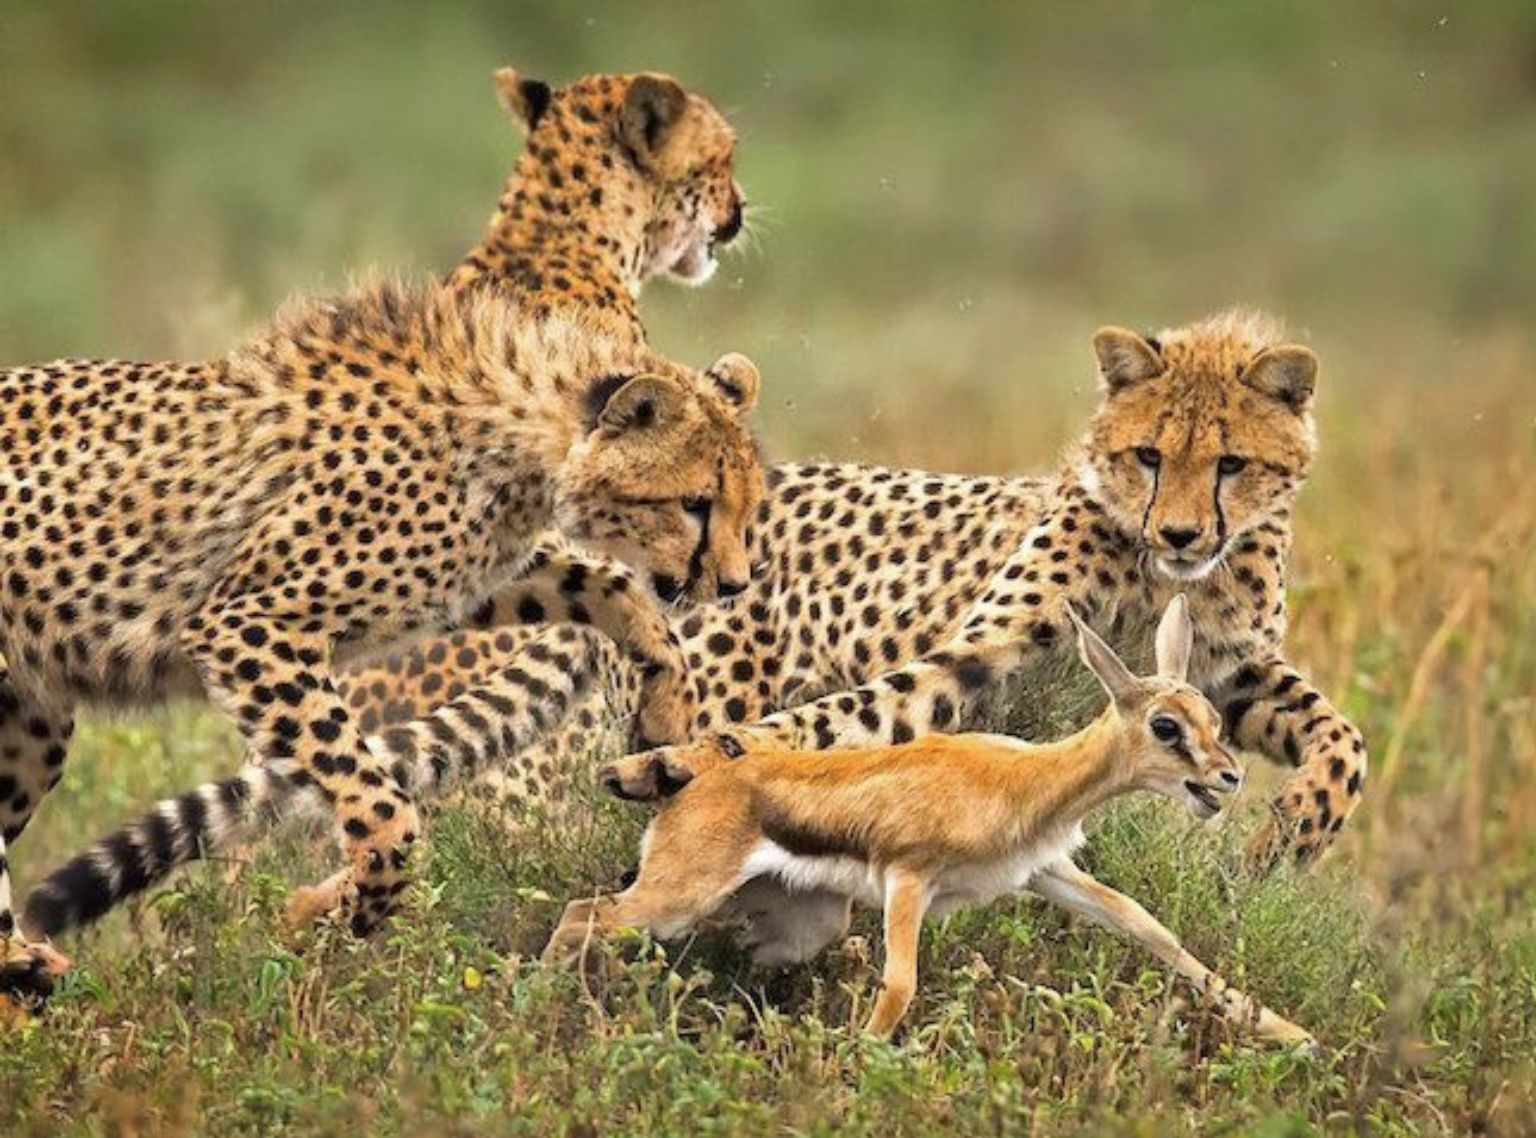 Protect the mother against predators